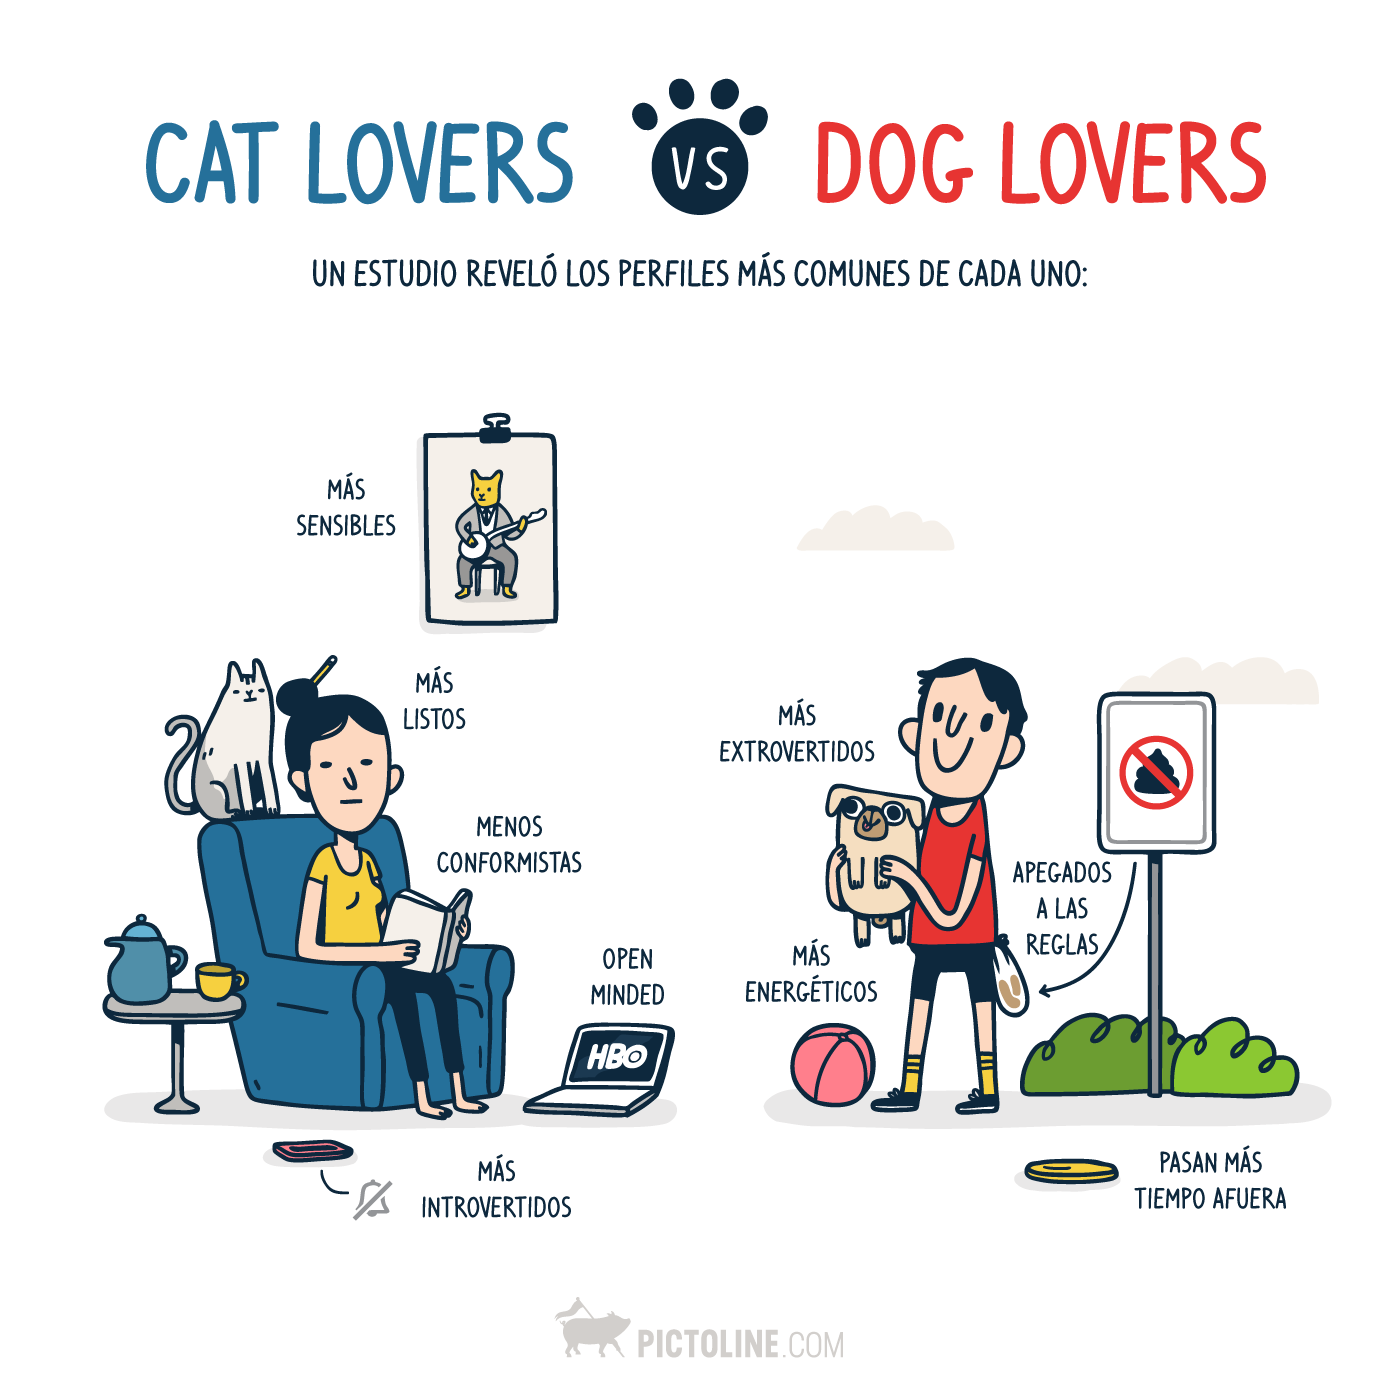 Cat lovers vs Dog lovers